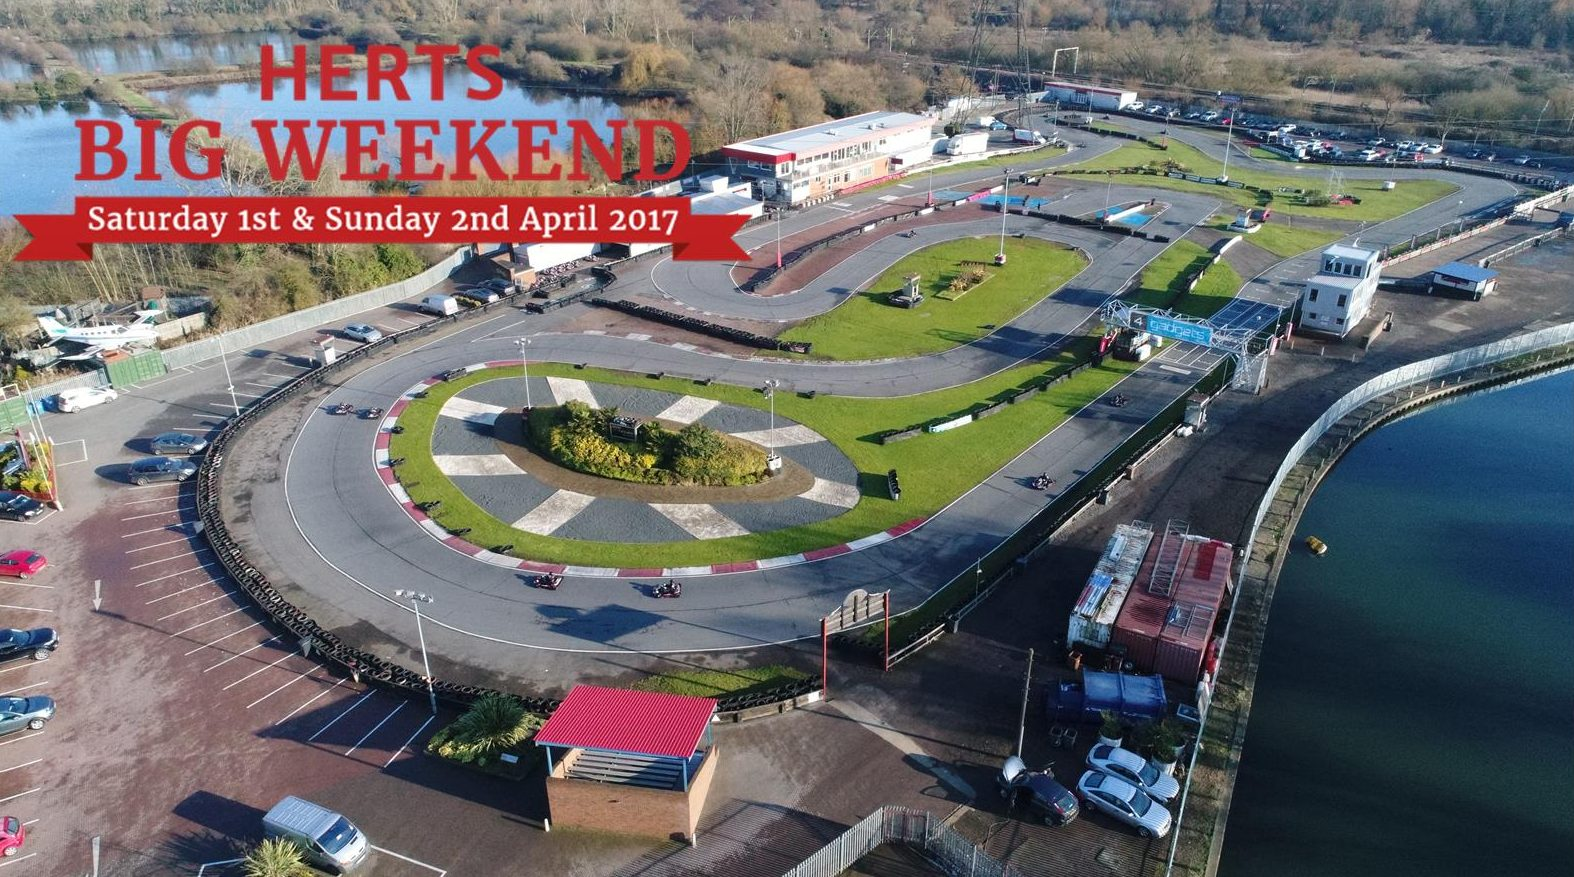 The big weekend competition rye house for Famous house tracks